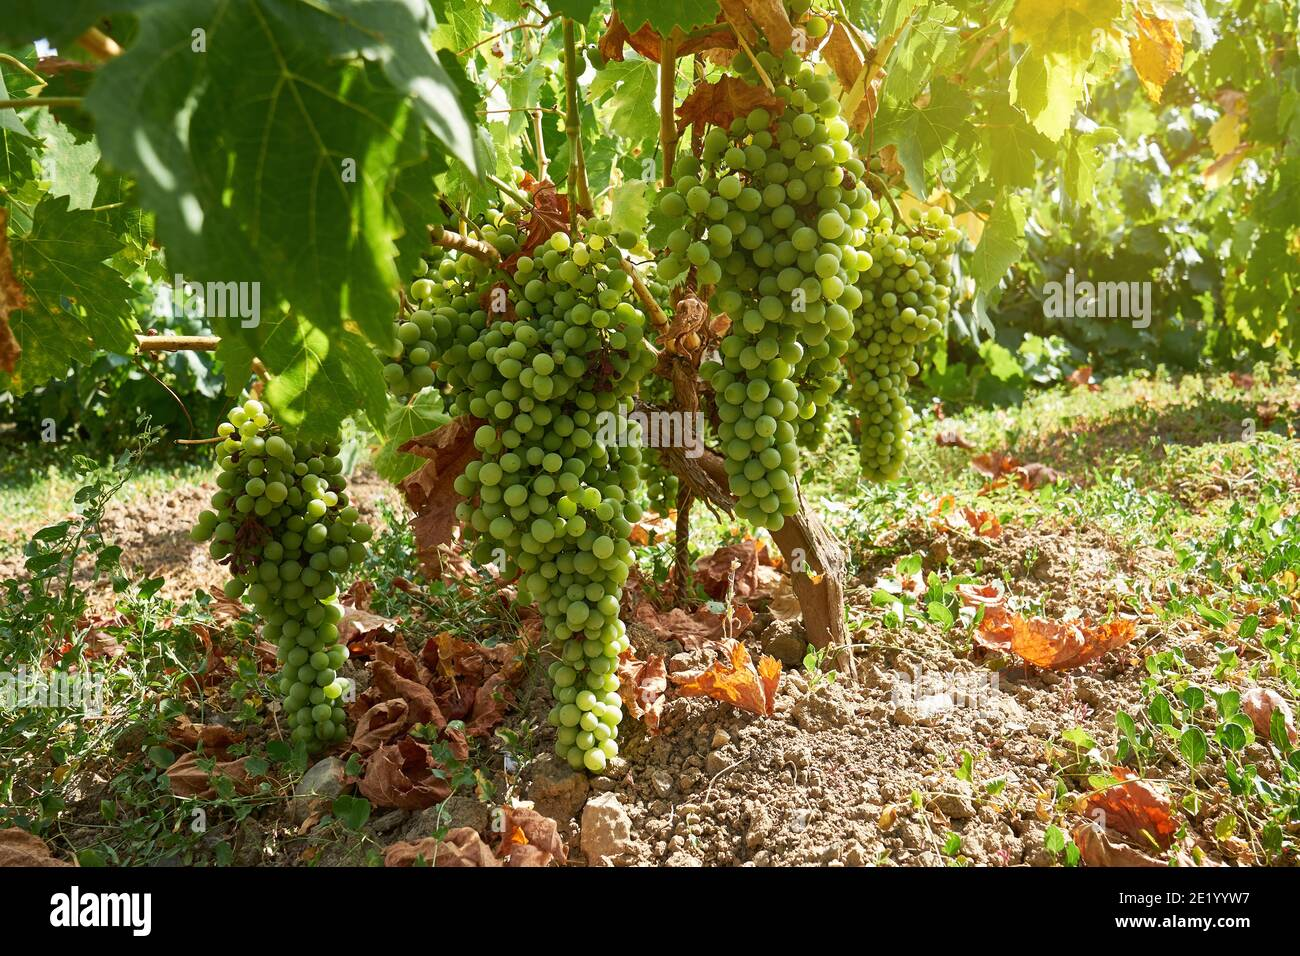 green grapes on the vine giving them the sun Stock Photo